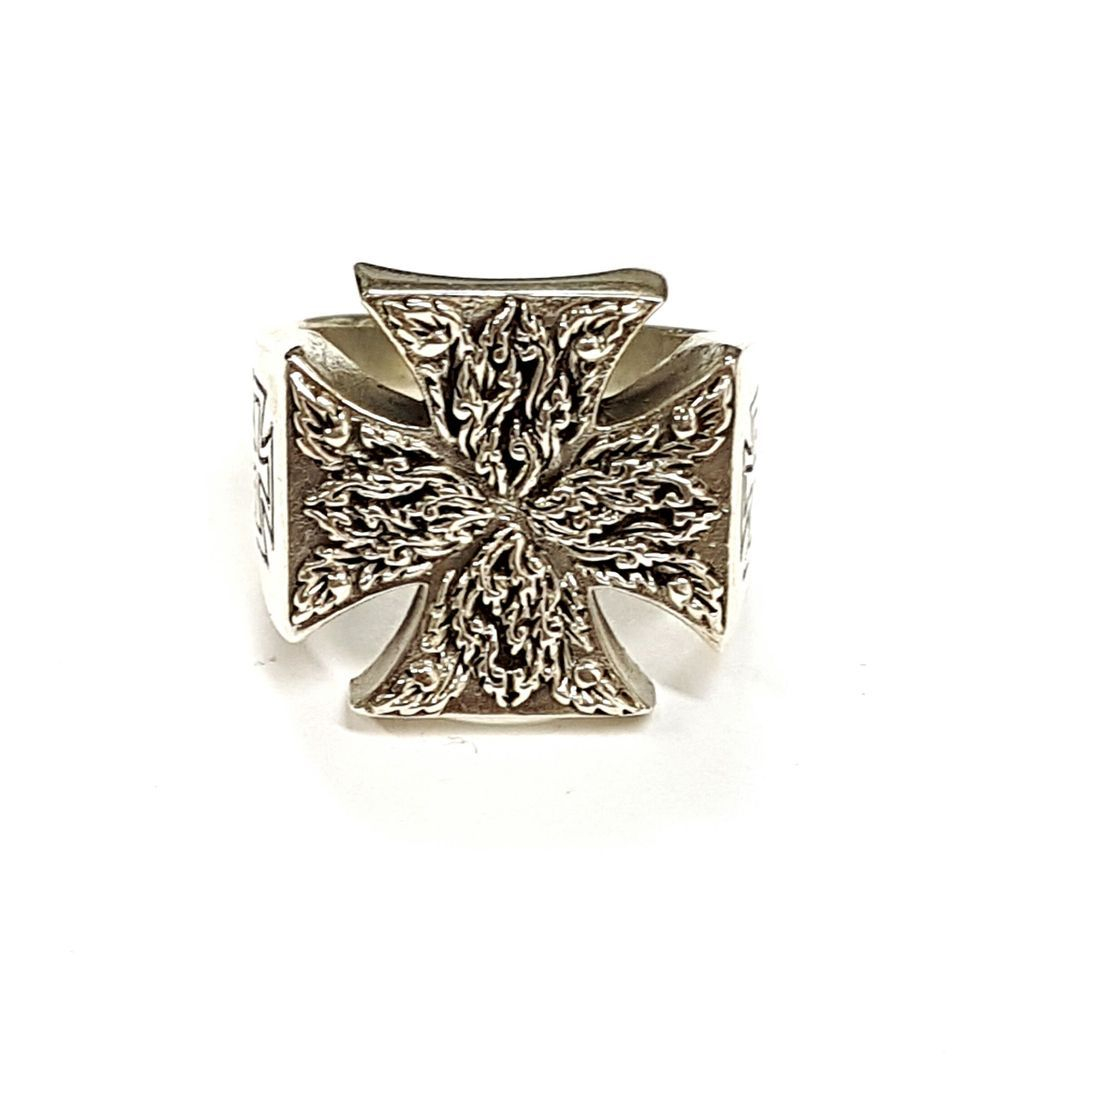 Decorative Maltese Cross Ring available at Kazbah online and our Leicester City Centre shop